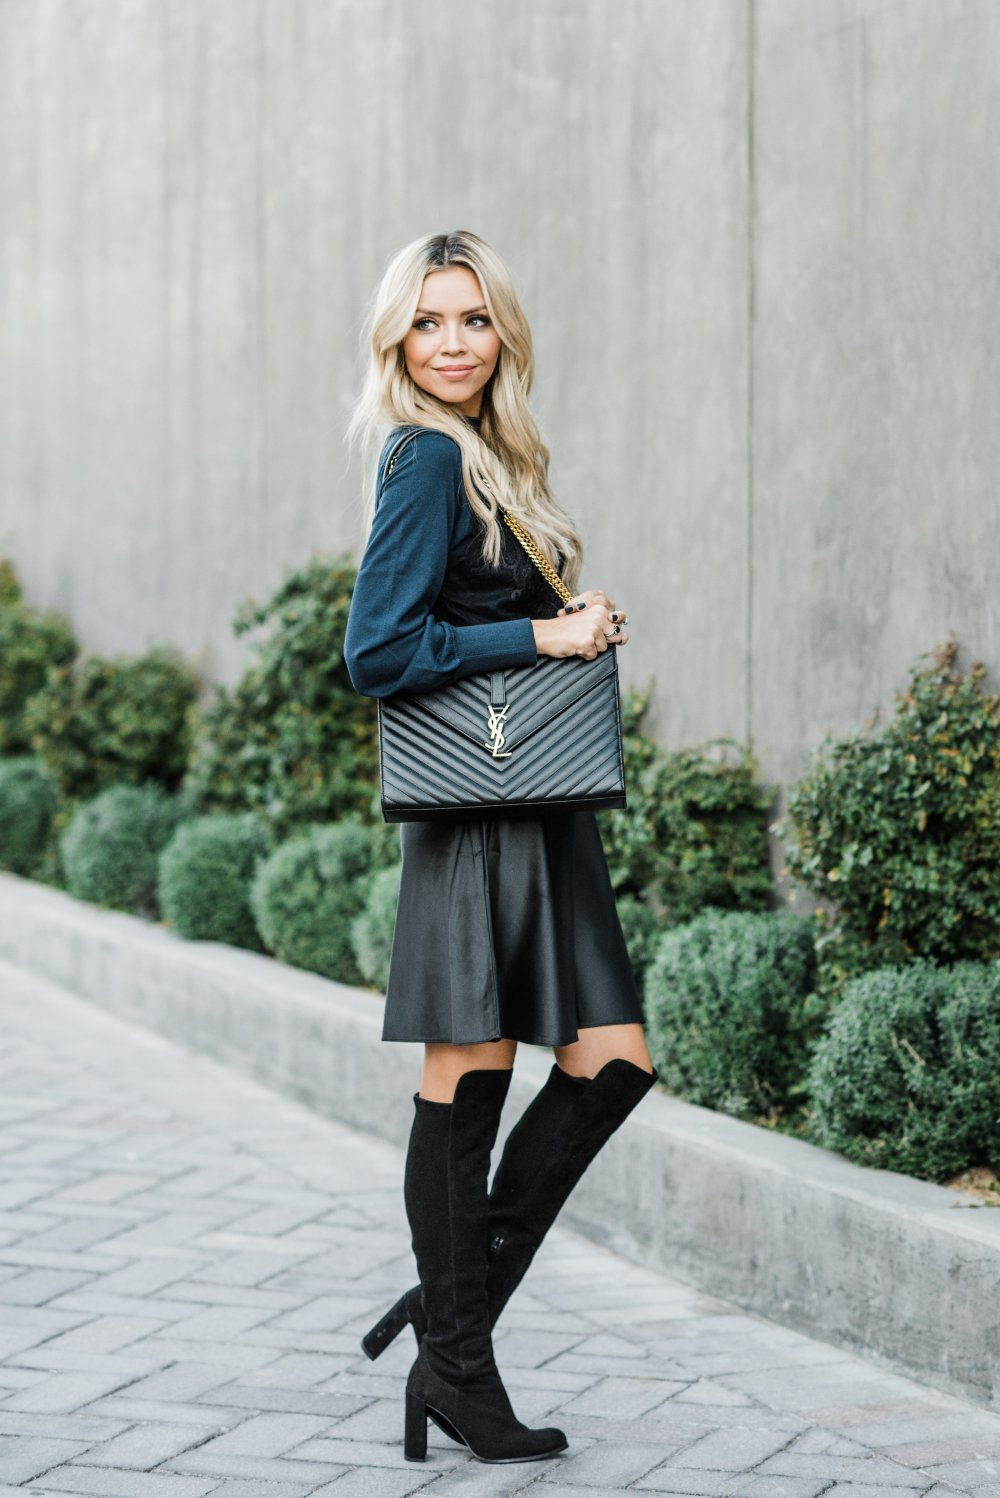 Blog post on Splurge Worthy gifts is on the blog! Check out this amazing Hybrid Slip & Sweater dress from Nordstrom! The lace detail is so pretty and the perfect girly touch! #trulydestiny #holidaygiftguide #fashiondresses